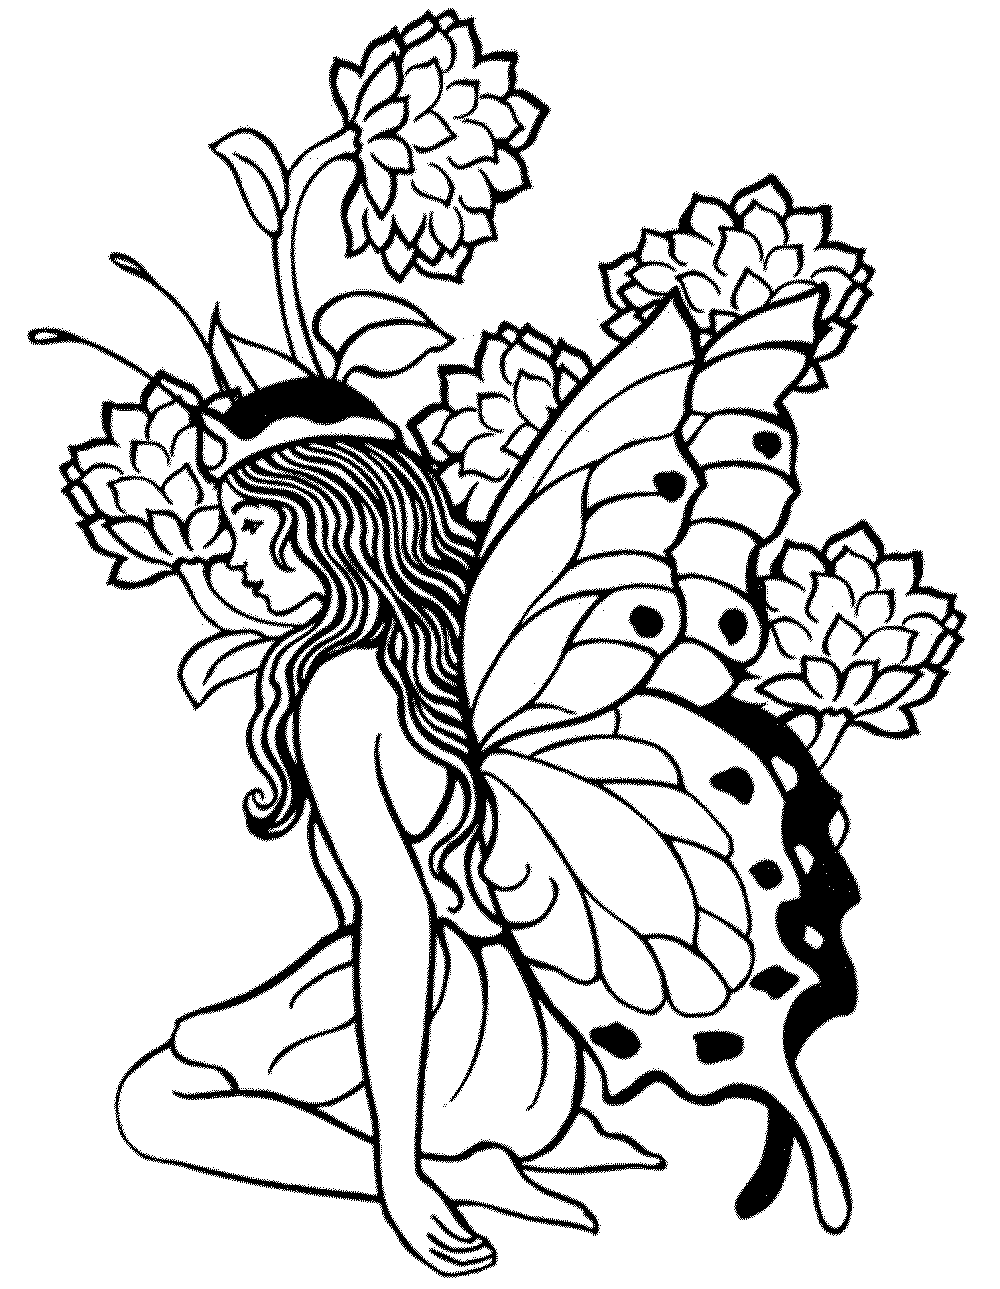 Free coloring pages printable for adults - Owl Coloring Pages For Adults Printable Kids Colouring Pages